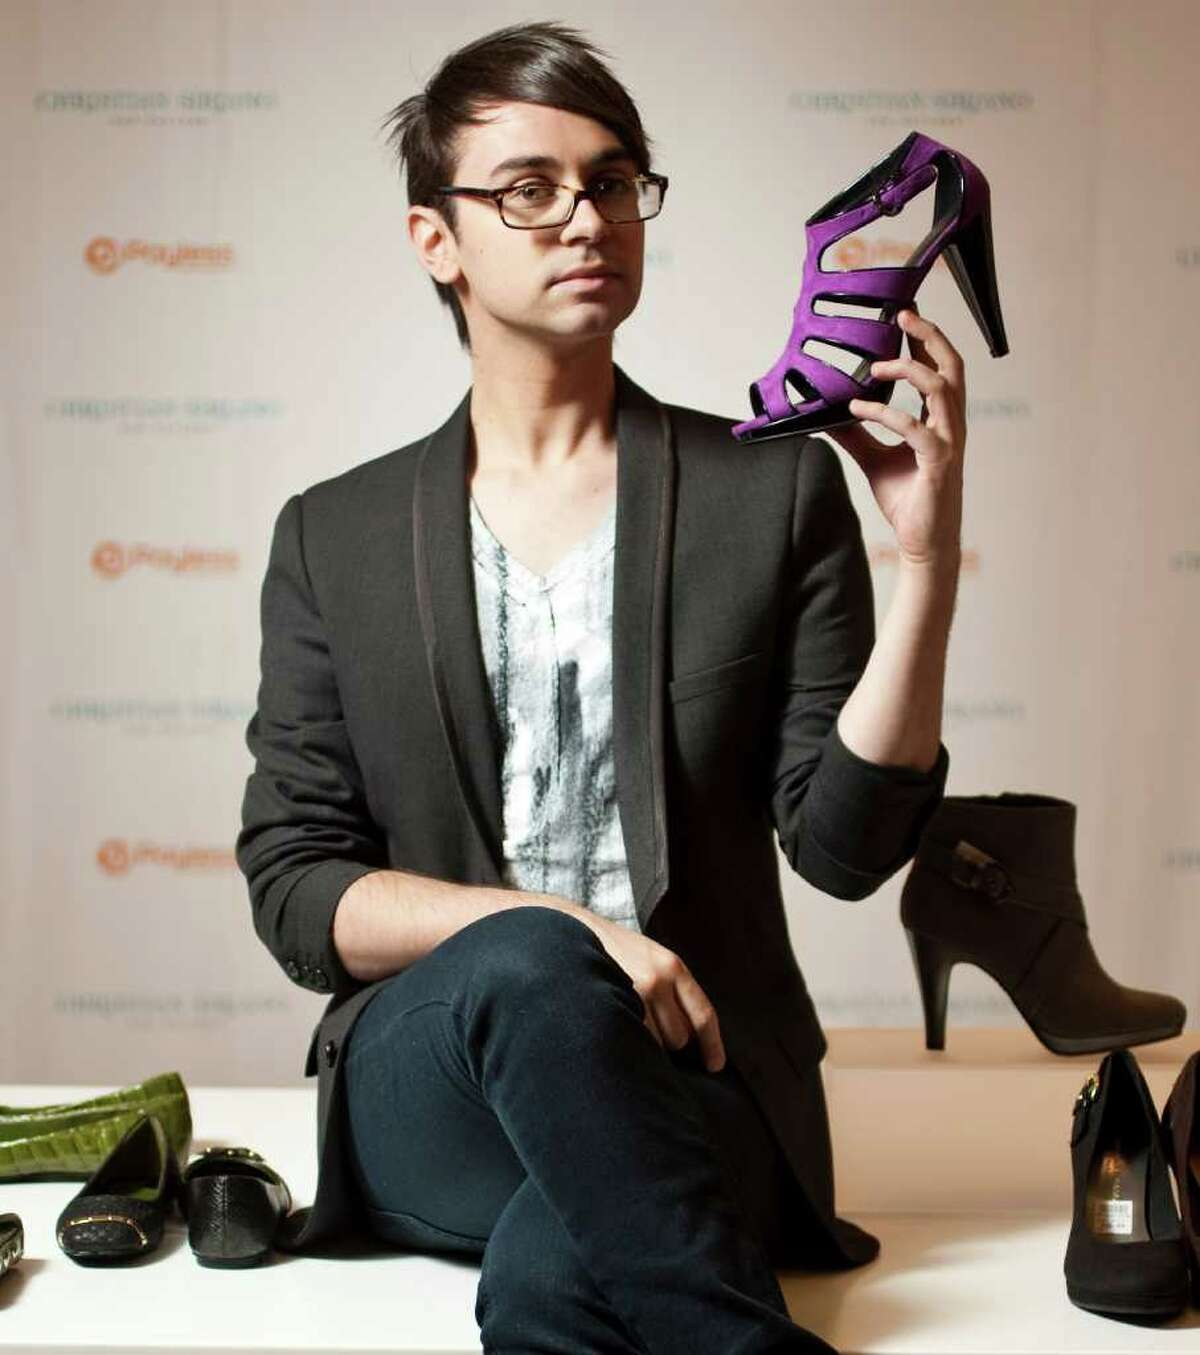 Fashion designer Christian Siriano sells a line of women's shoes at Payless ShoeSource.